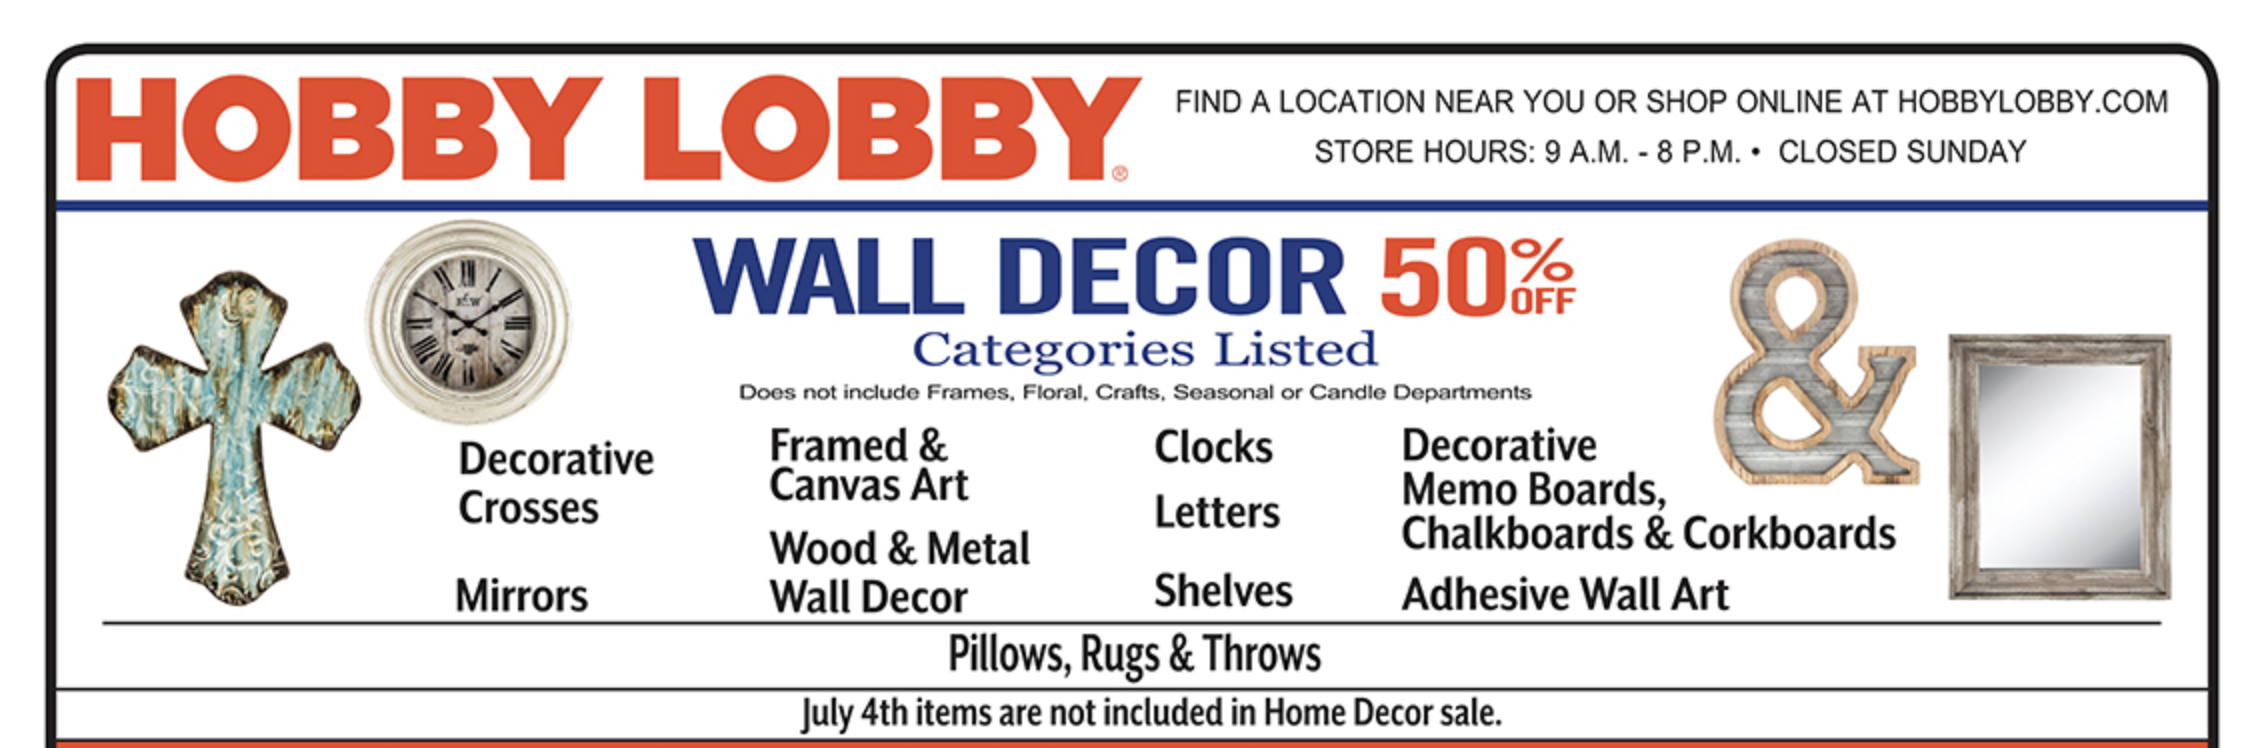 New Items at Hobby Lobby That You Just Might Need in Your Home — The